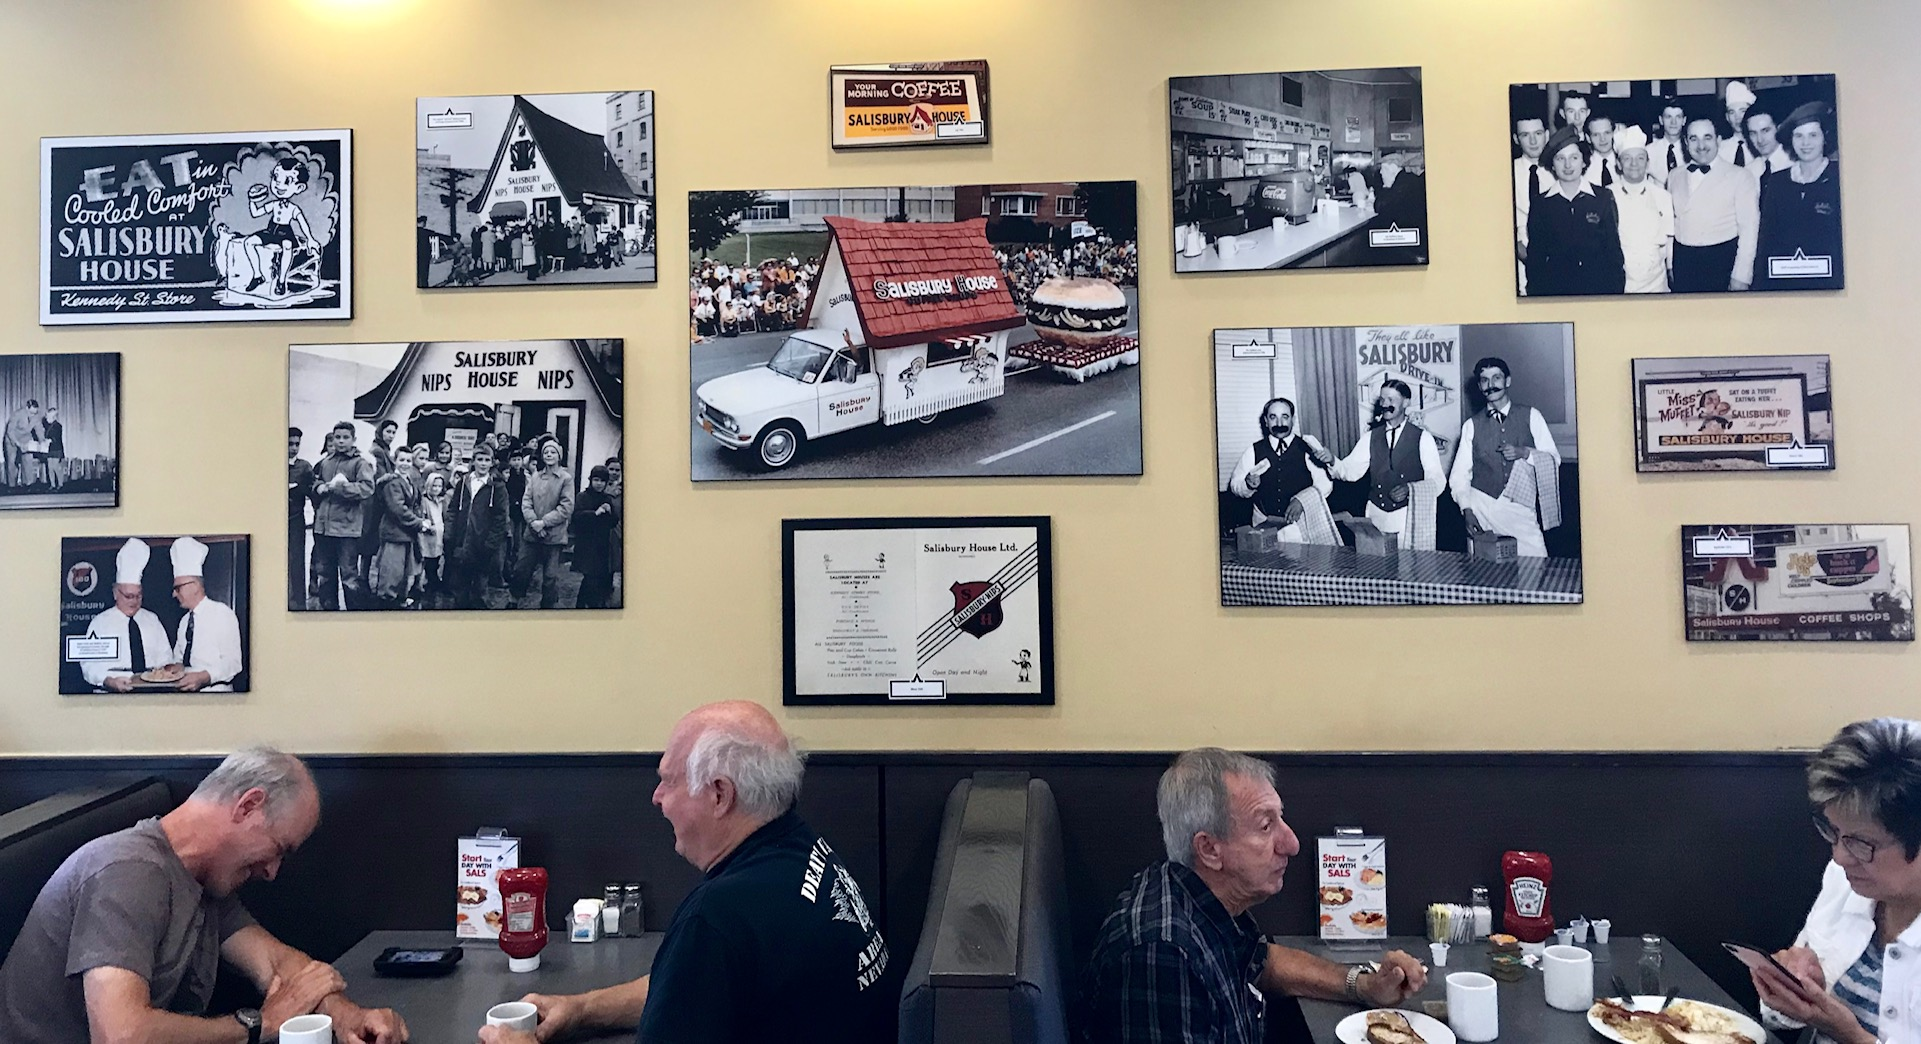 The walls of every Salisbury House are full of photos that document the evolution of the restaurant over the past 85+ years.